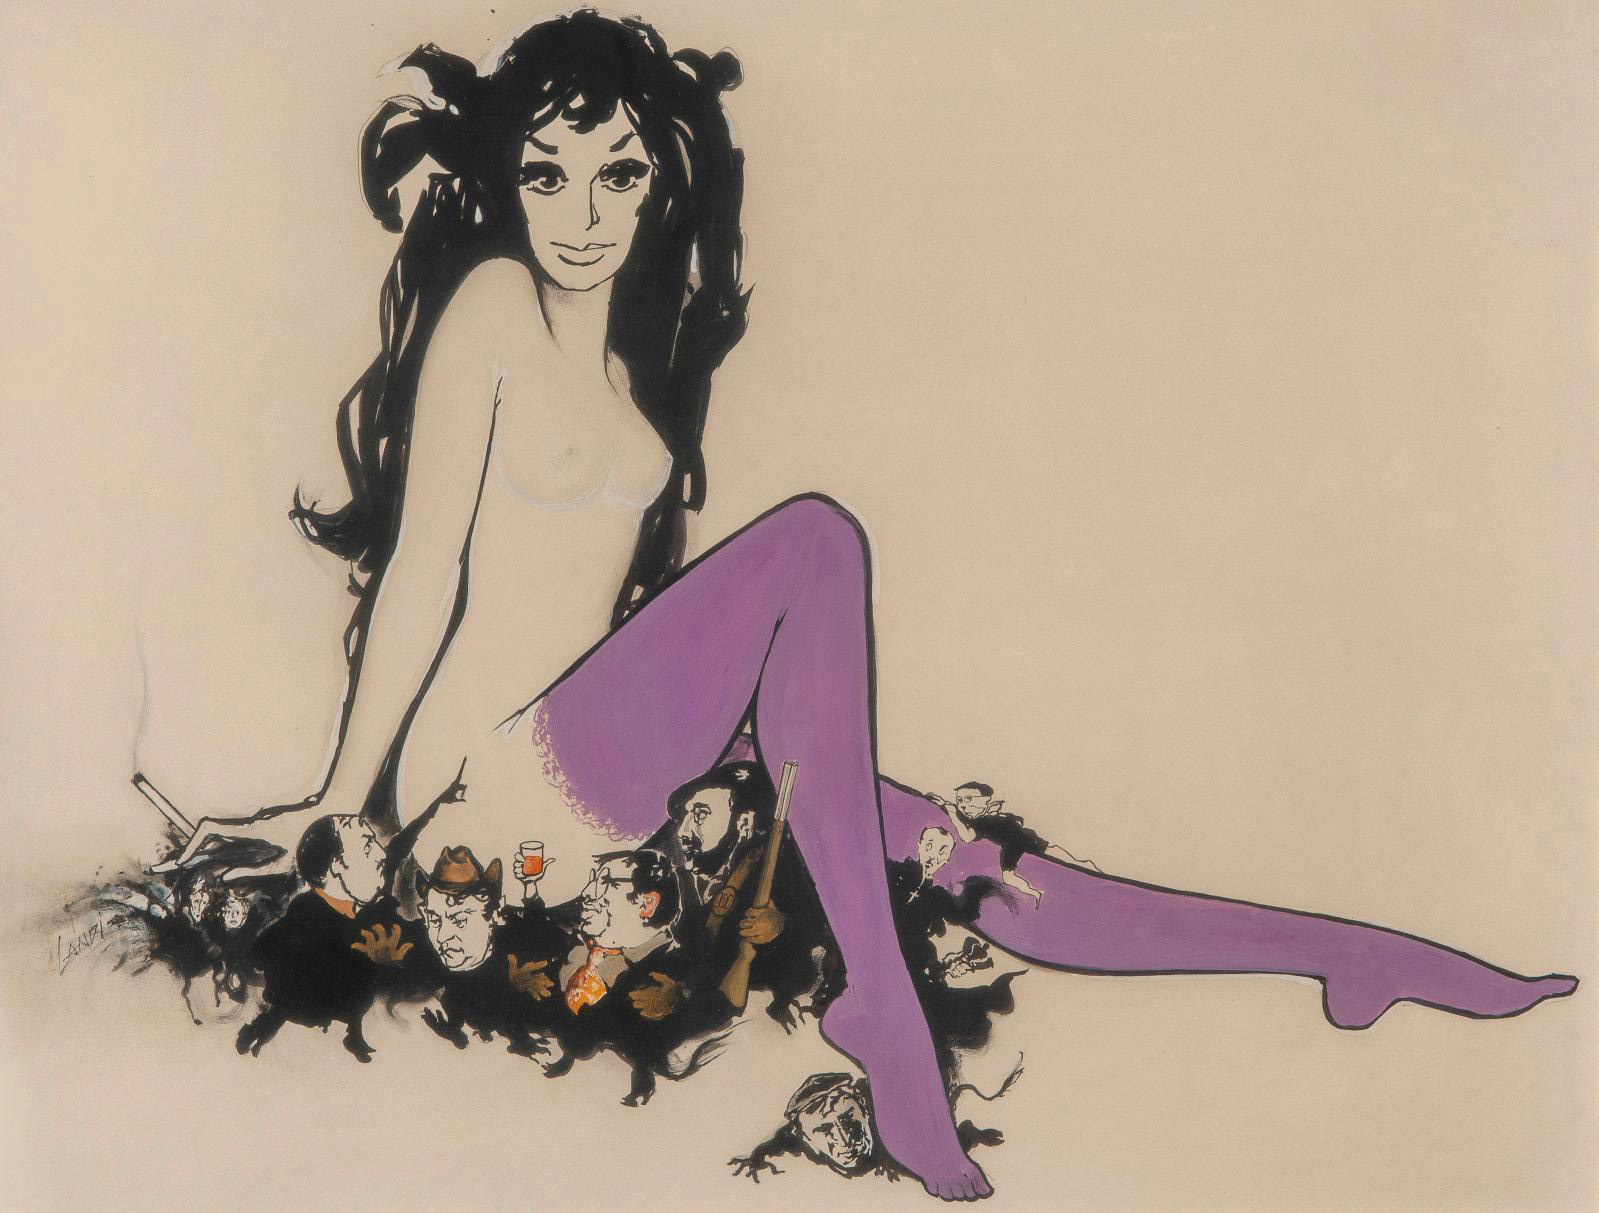 Michel Landi, sketch for the poster of A Very Curious Girl, gouache, 48 x 62 cm/18.9 x 24.4 in.Estimate: €100/150